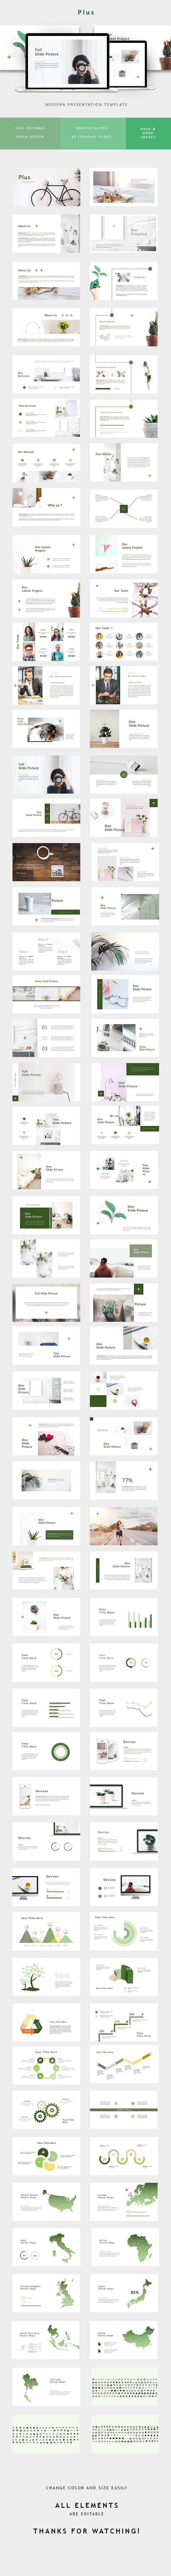 creative minimal powerpoint flyer pinterest presentation